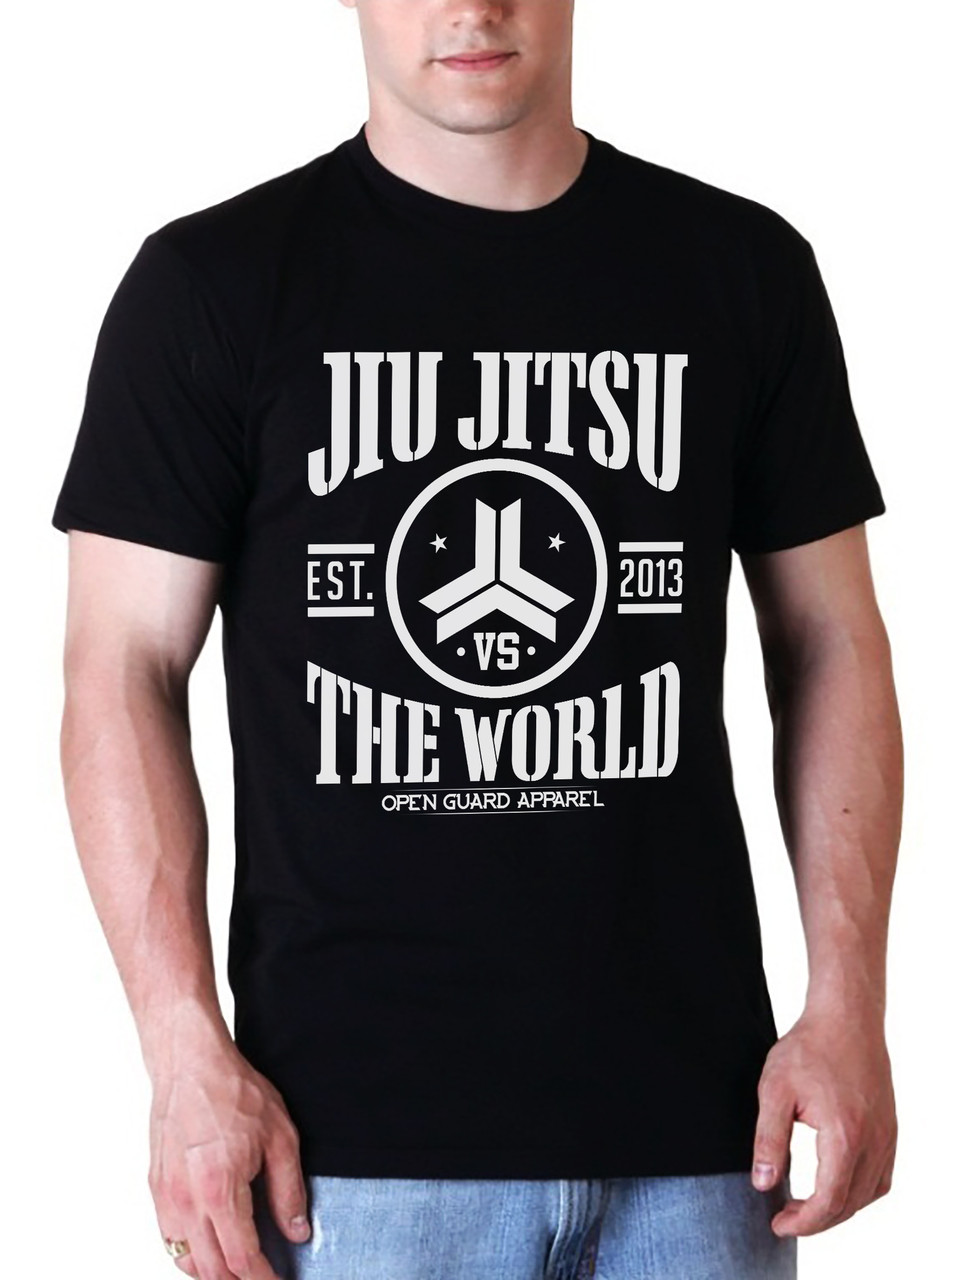 OGA Jiu Jitsu VS The World Black T-Shirt.  Available at www.thejiujitsushop.com  Open Guard Apparel